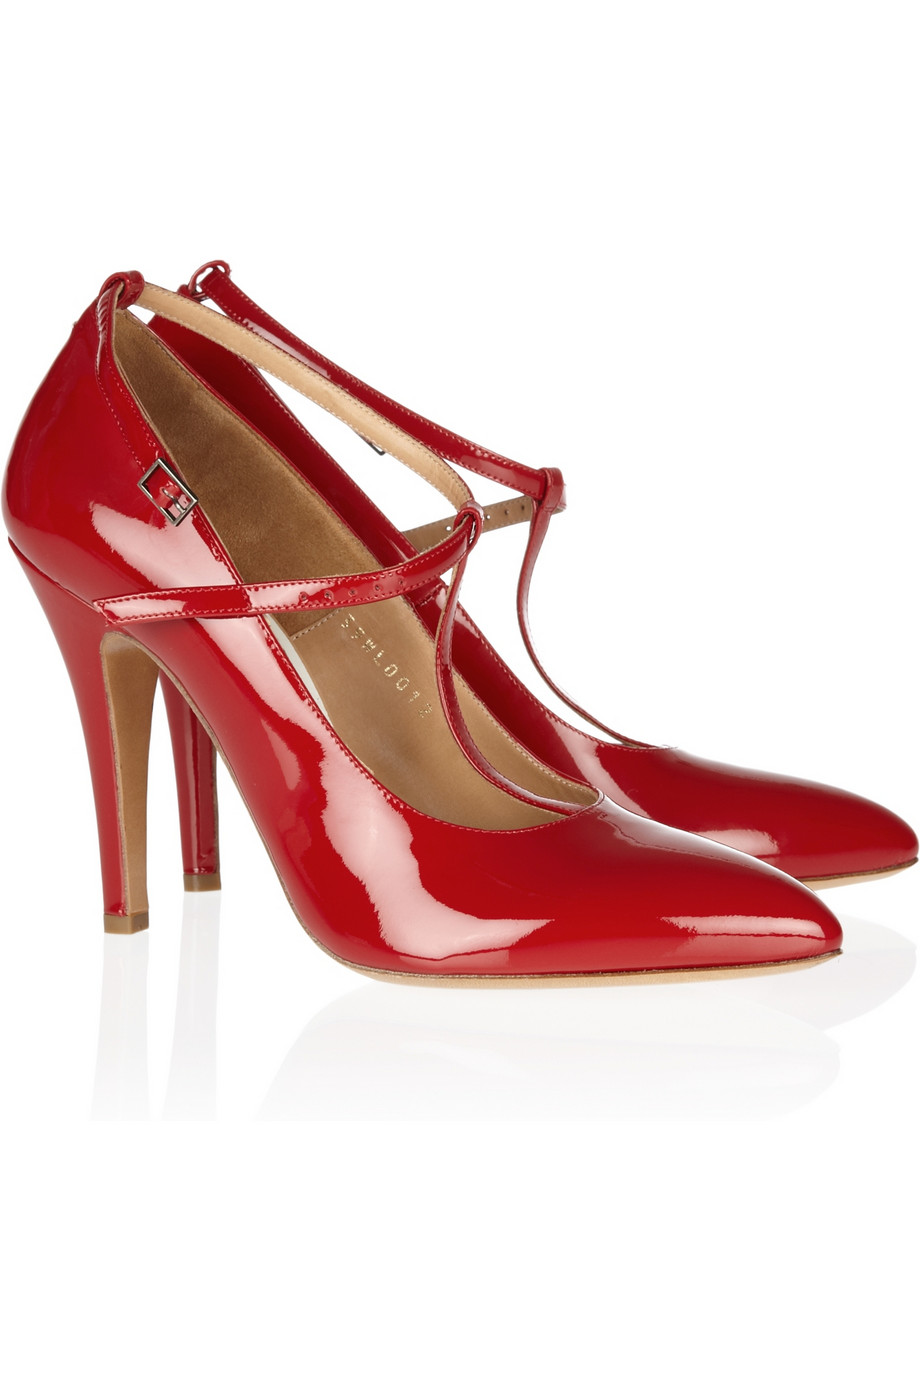 Patent Leather Red Heels